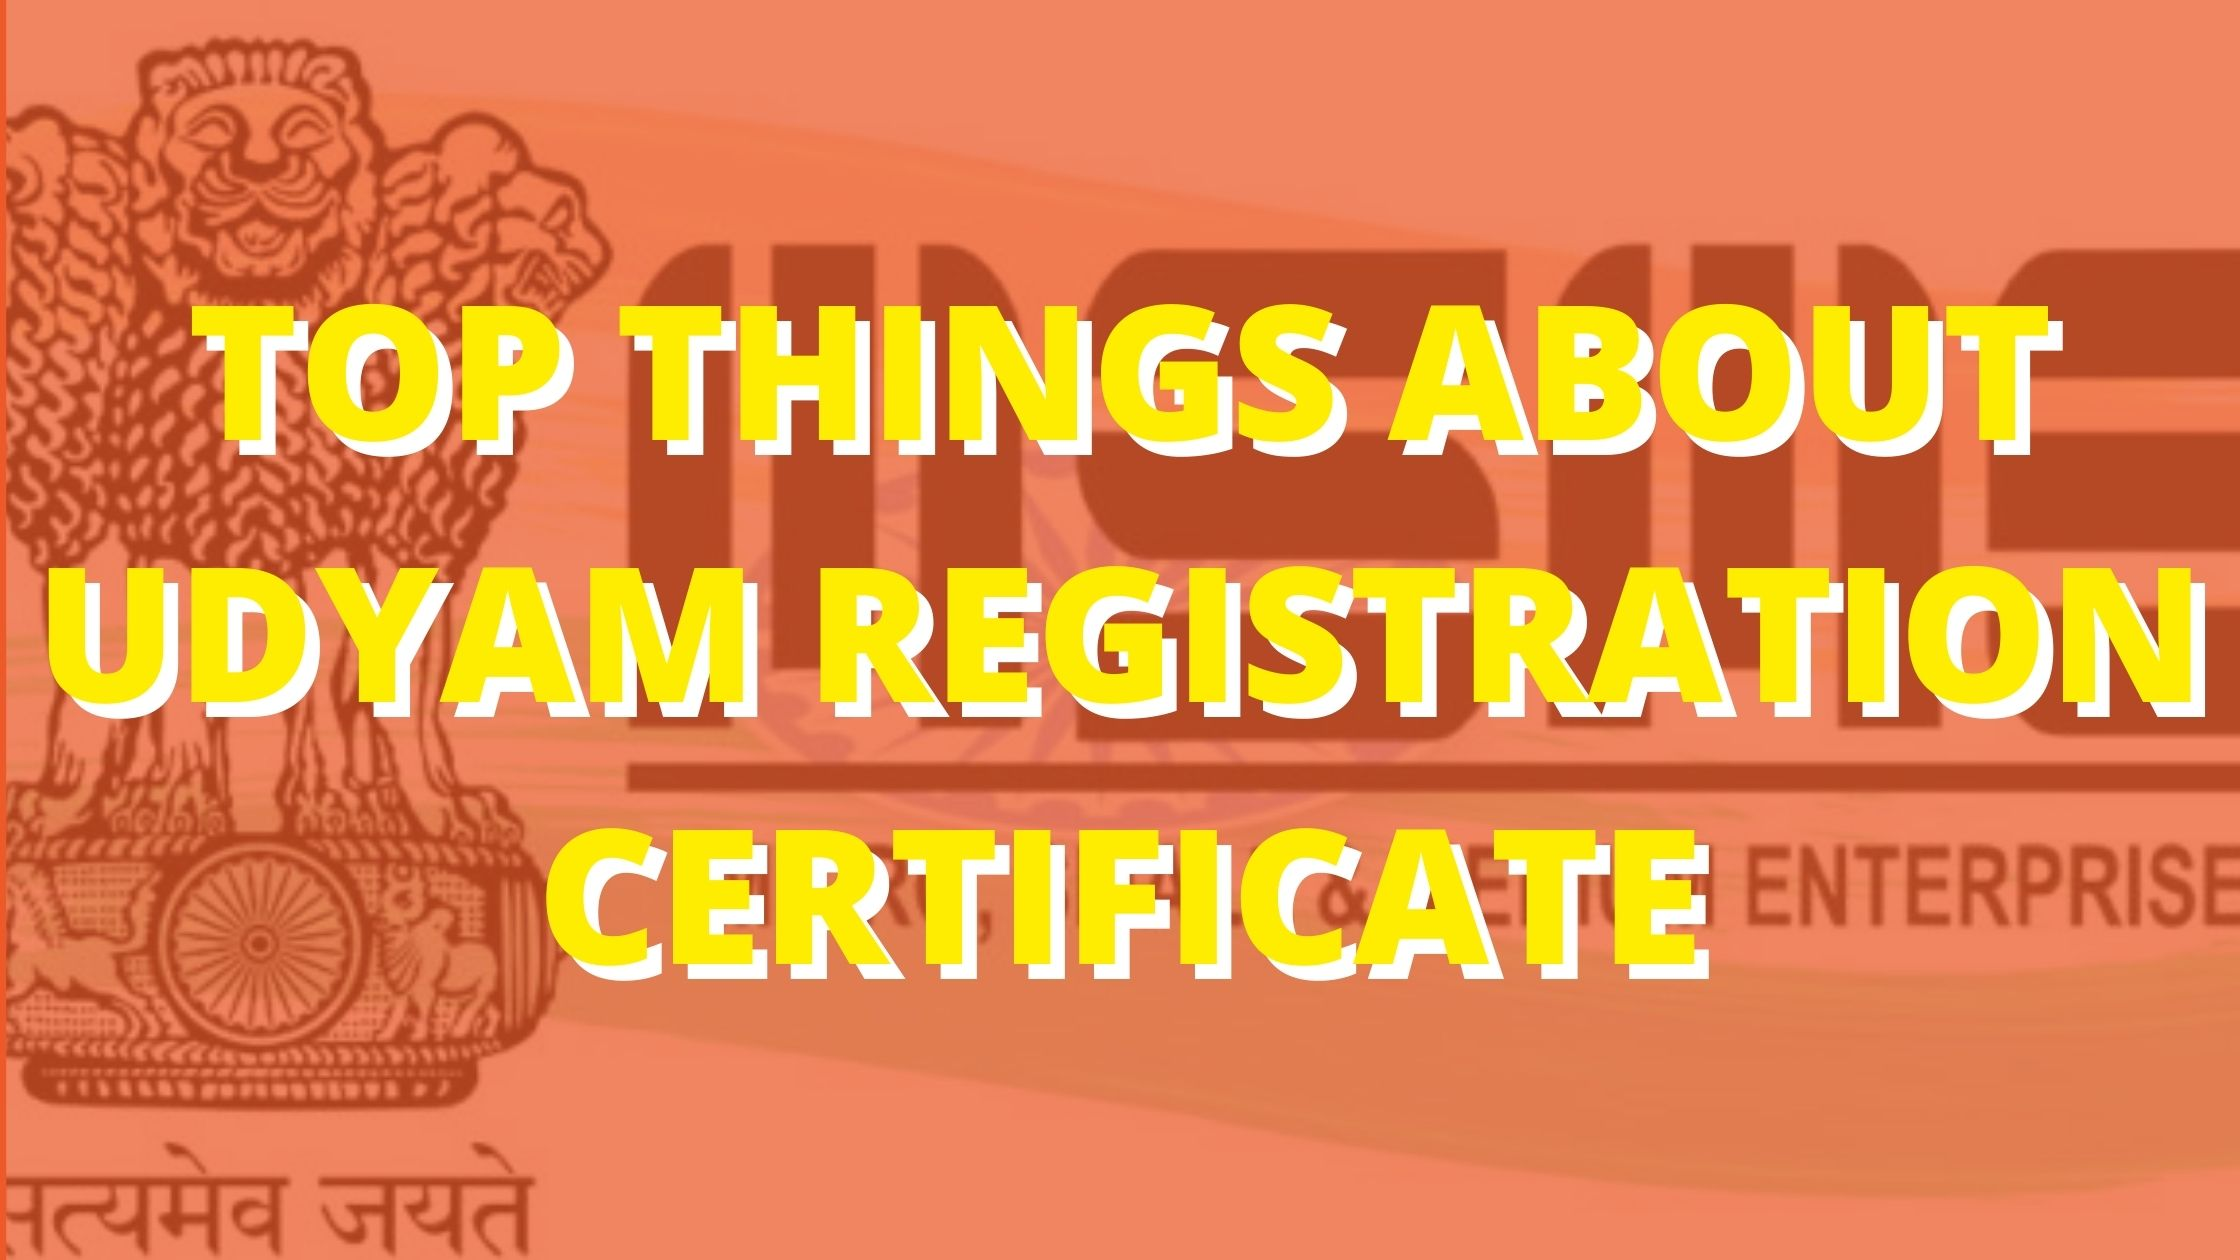 Top Things About Udyam Registration Certificate